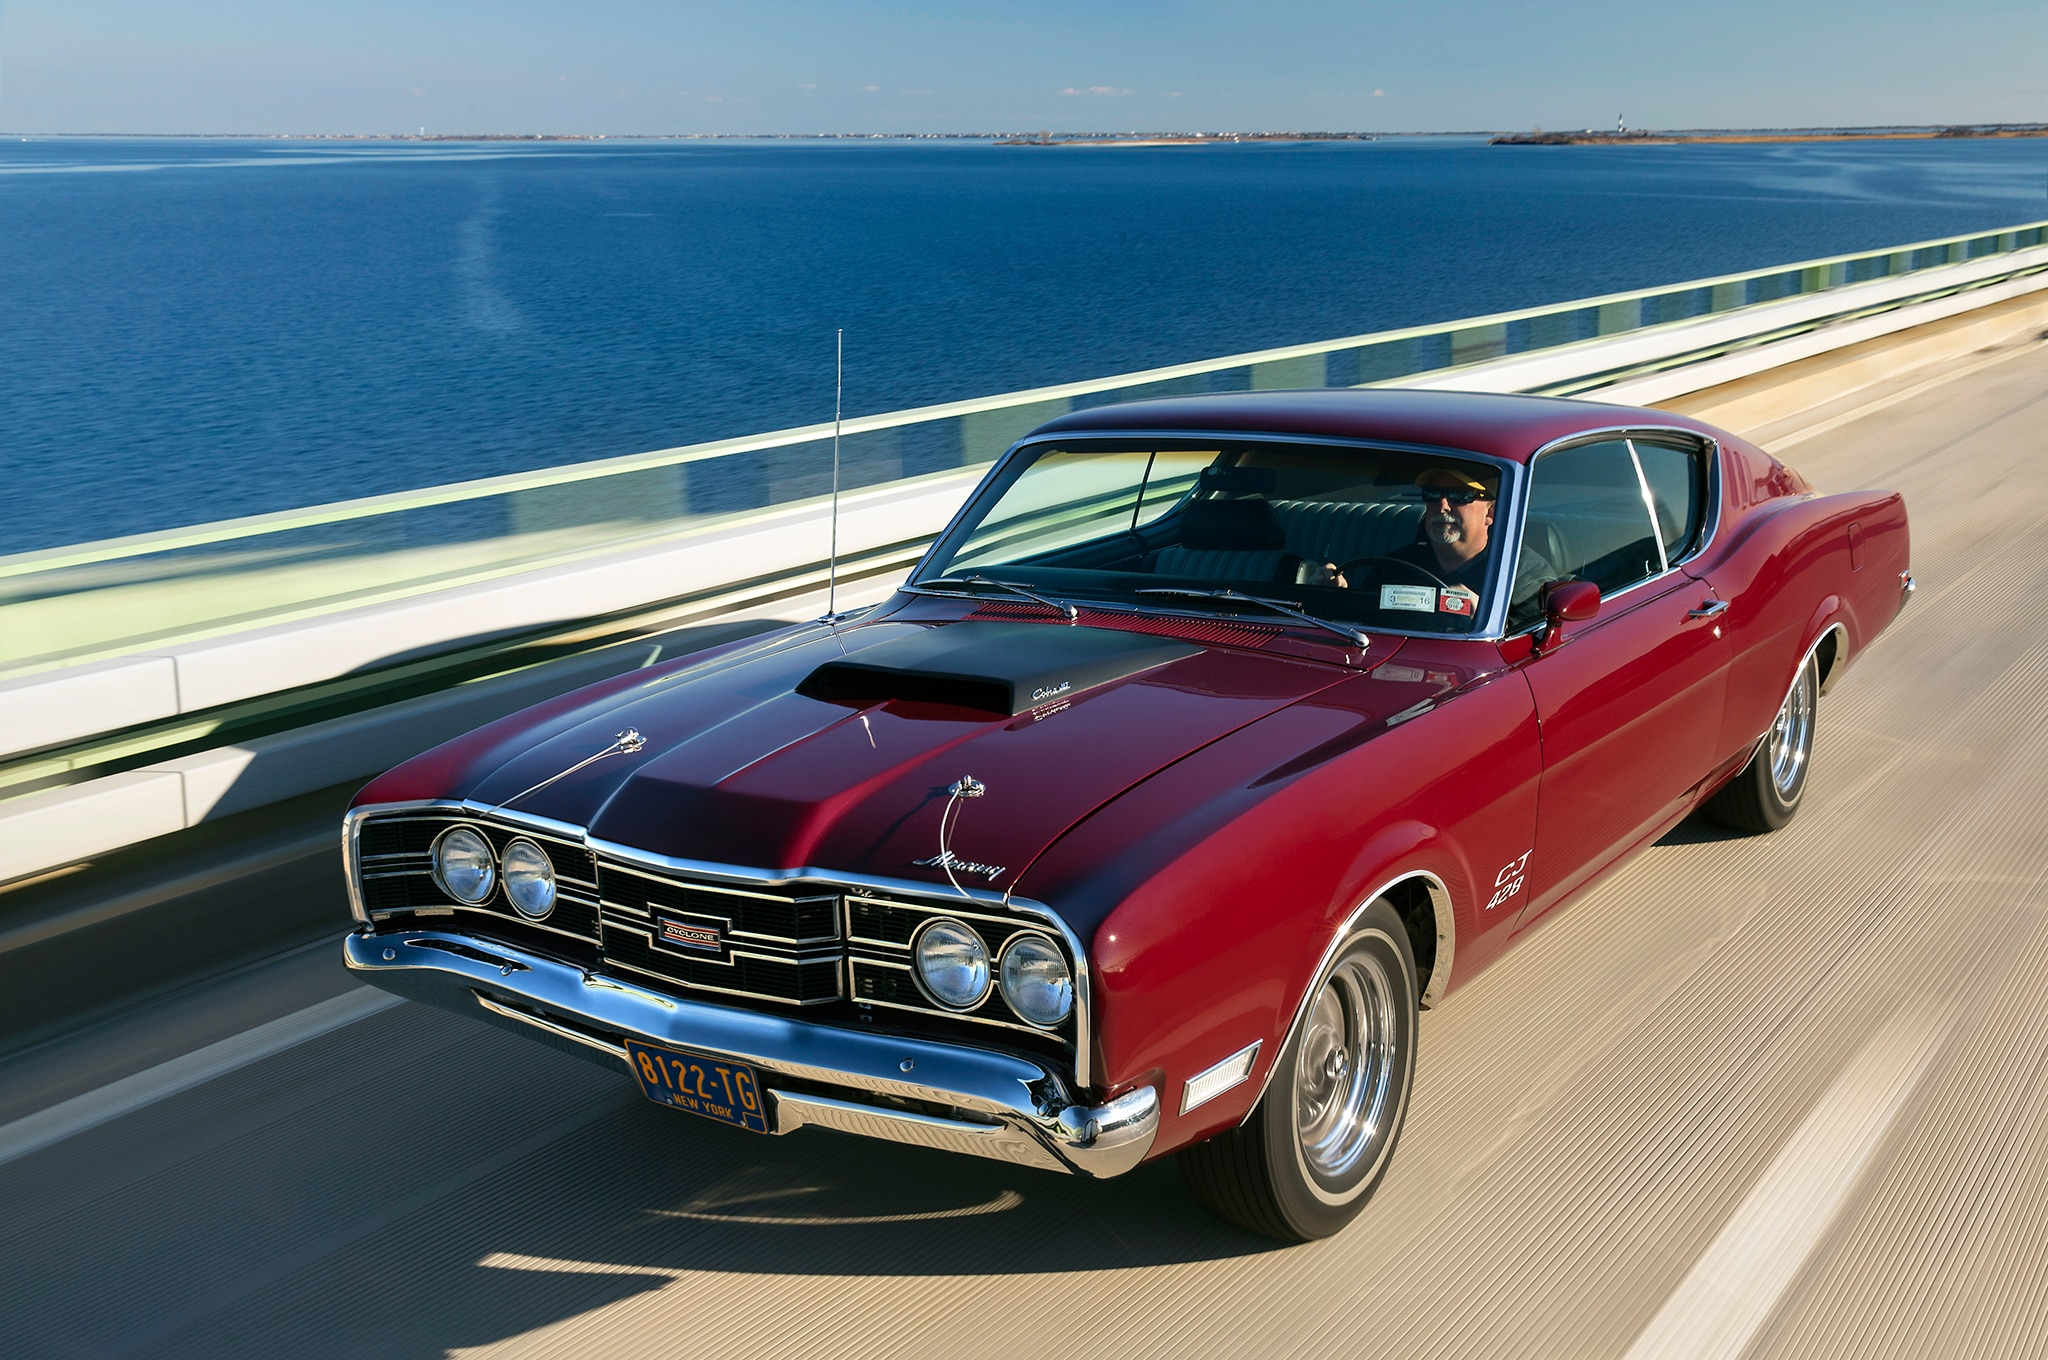 Rare 1969 Mercury Cyclone CJ Has Traveled From One End of the     001 Chernow 1969 Mercury Cyclone Cj Front Three Quarter